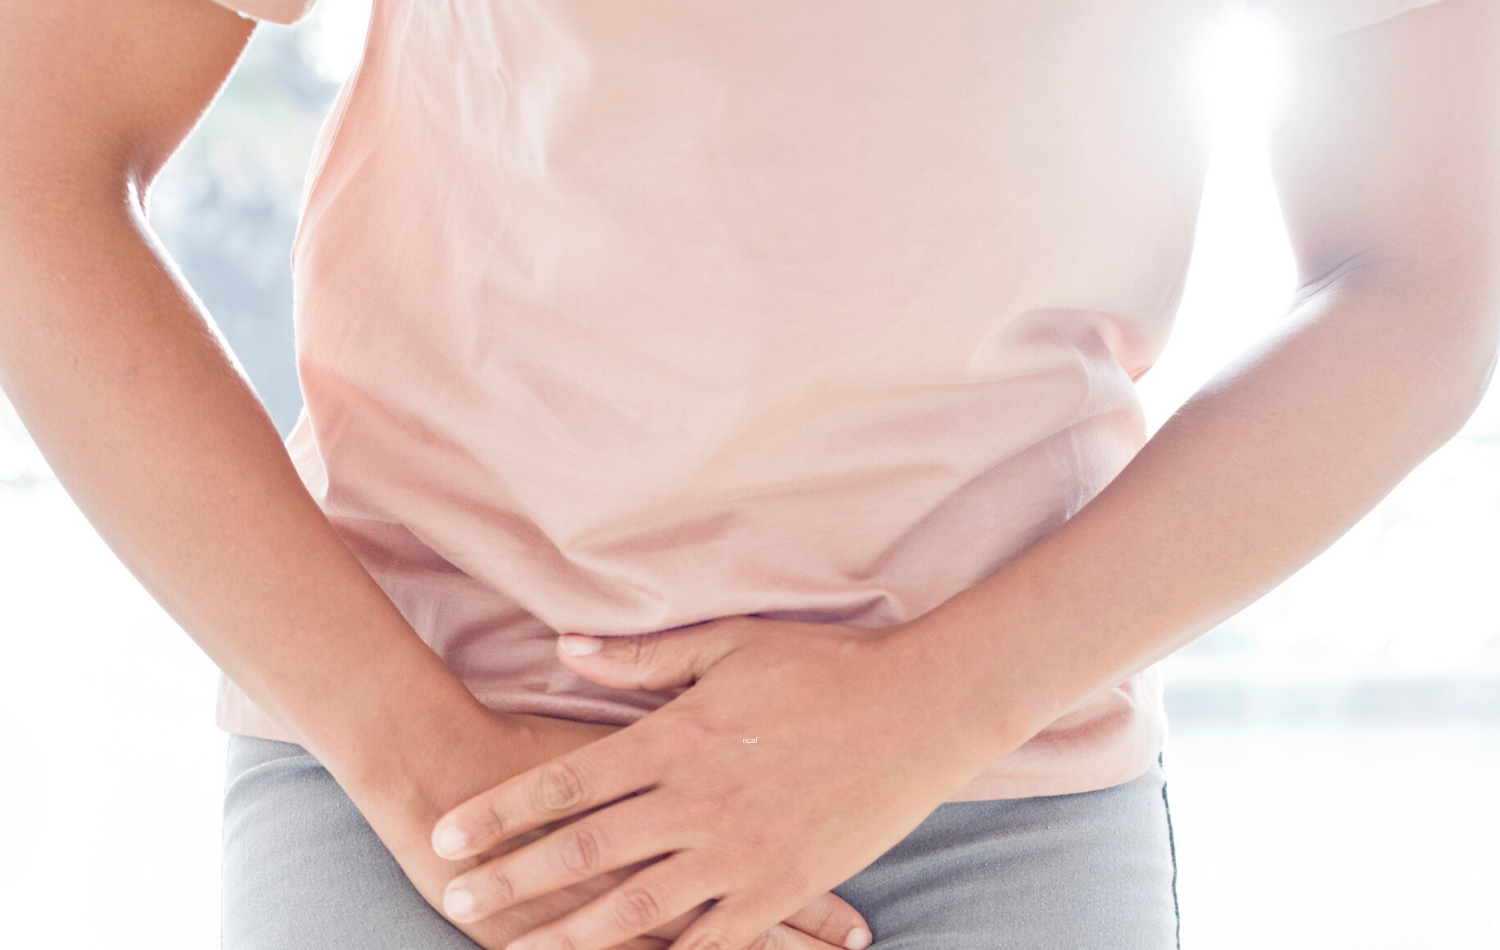 Tips to Help You Control Urinary Incontinence at Night